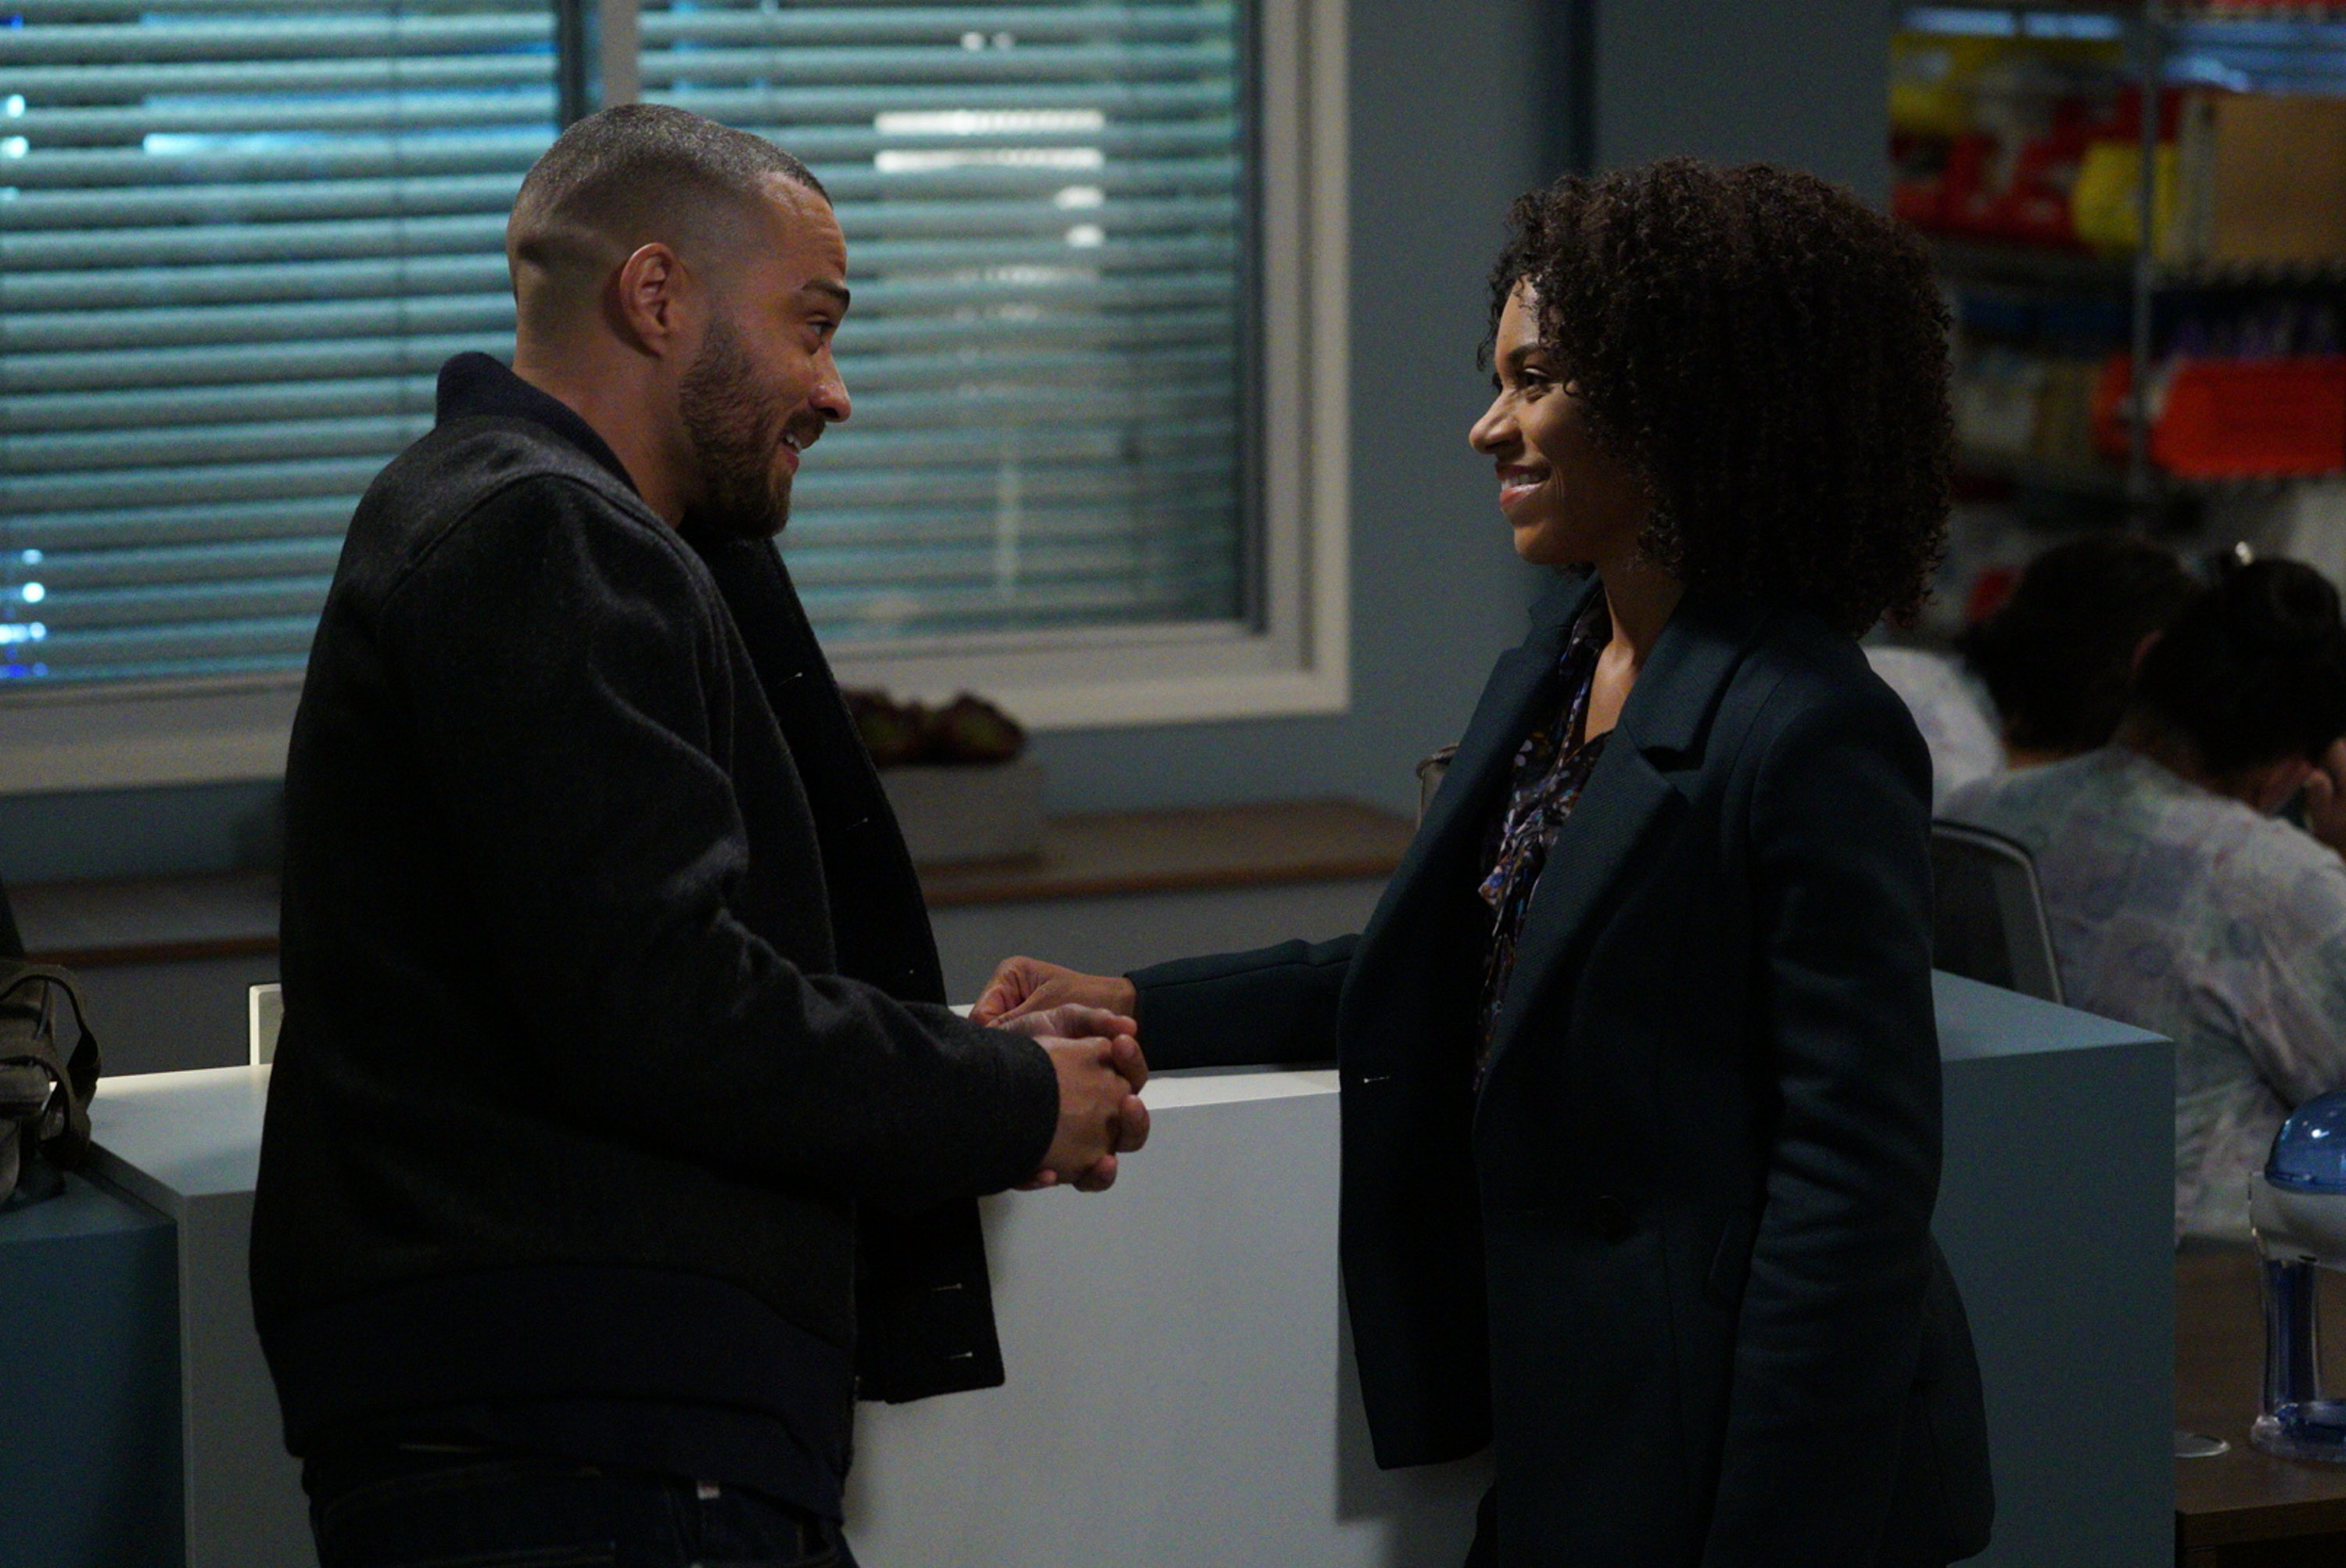 """GREY'S ANATOMY - """"Four Seasons in One Day"""" - Jo finally faces her estranged, abusive husband Paul Stadler, while Grey Sloan continues to work with the FBI after a hacker has compromised the hospital's computer system, on the midseason return of """"Grey's Anatomy,"""" THURSDAY, JAN. 18 (8:00-9:00 p.m. EST), on The ABC Television Network. (ABC/Richard Cartwright)JESSE WILLIAMS, KELLY MCCREARY"""